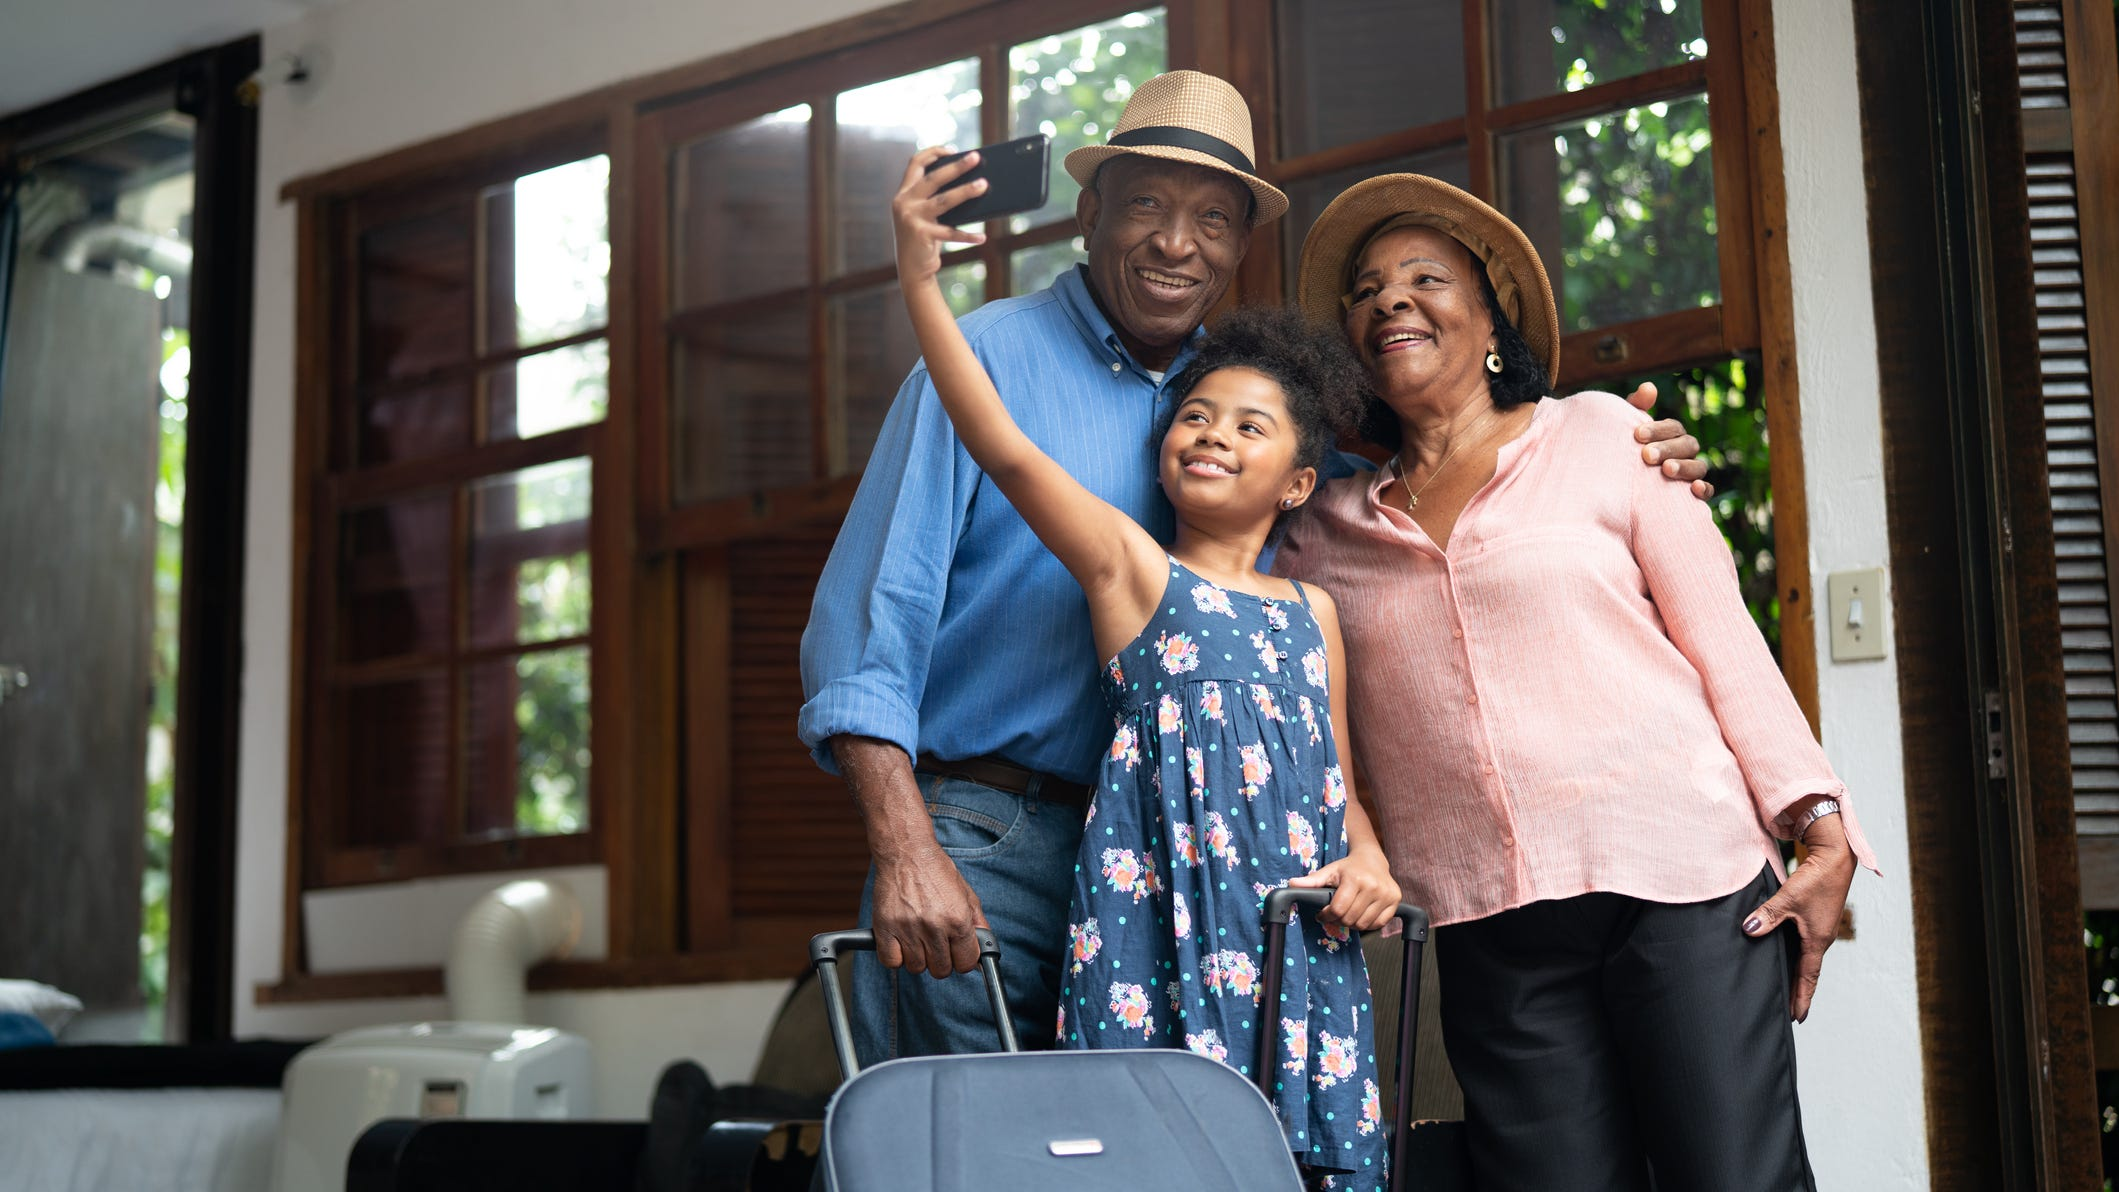 Covid Travel With Grandparents Grandkids How To Plan What To Know